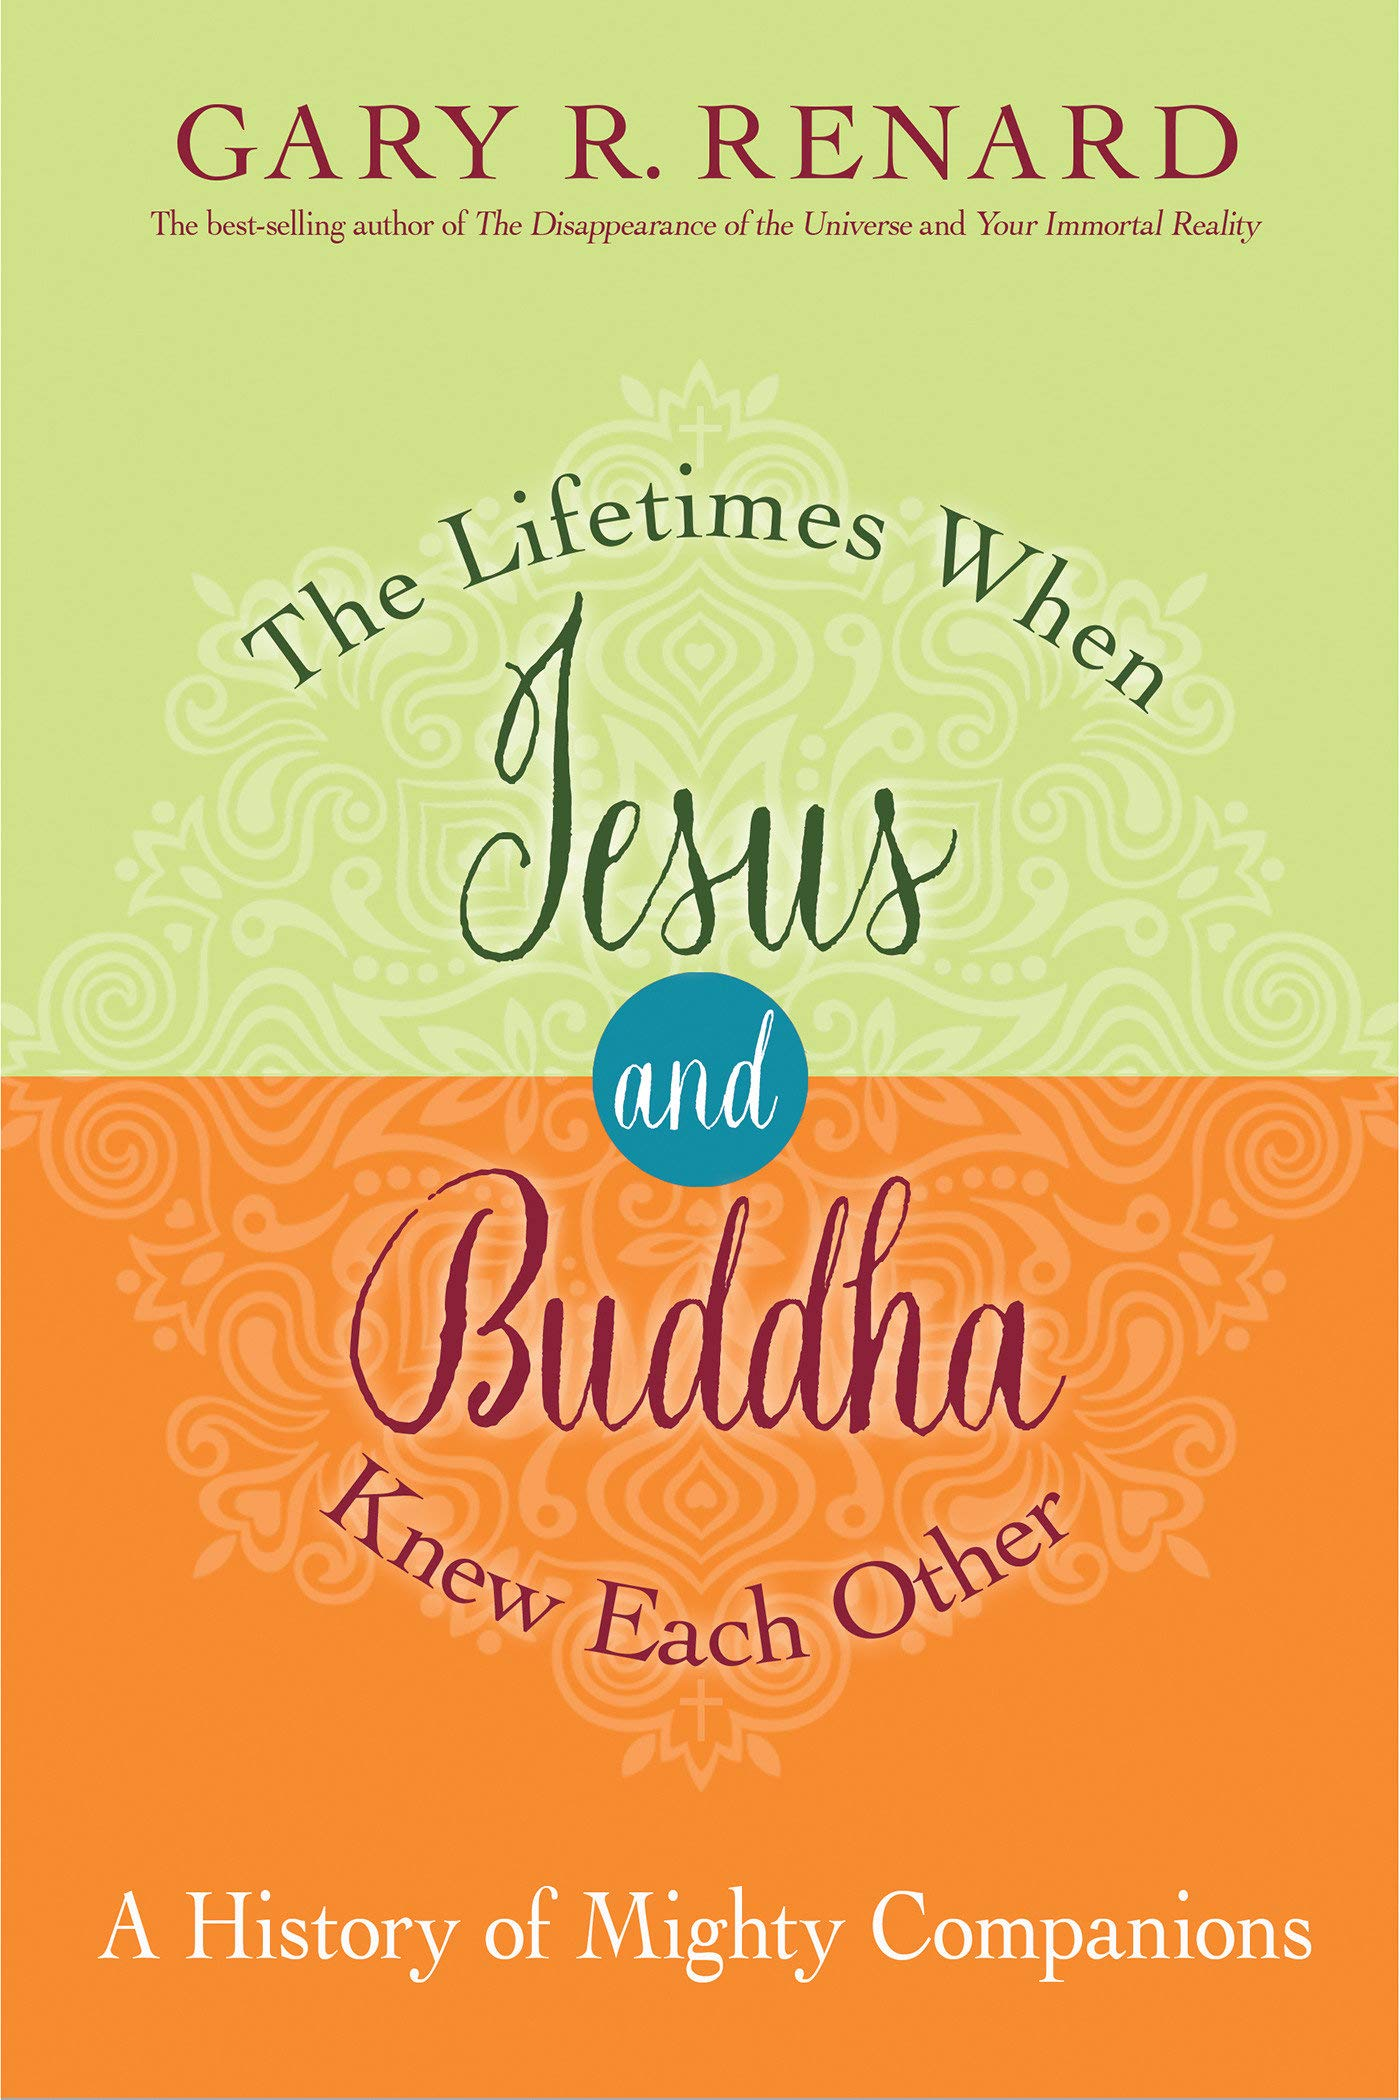 Read Online The Lifetimes When Jesus and Buddha Knew Each Other: A History of Mighty Companions PDF